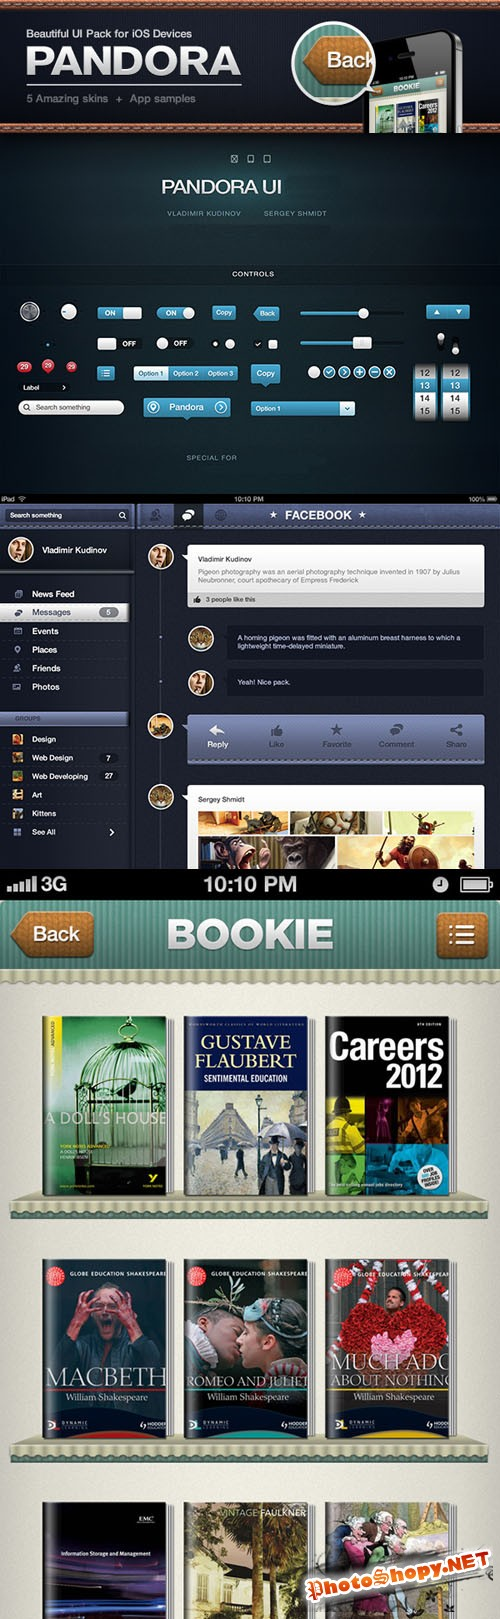 Pandora User Interface Pack for iOS